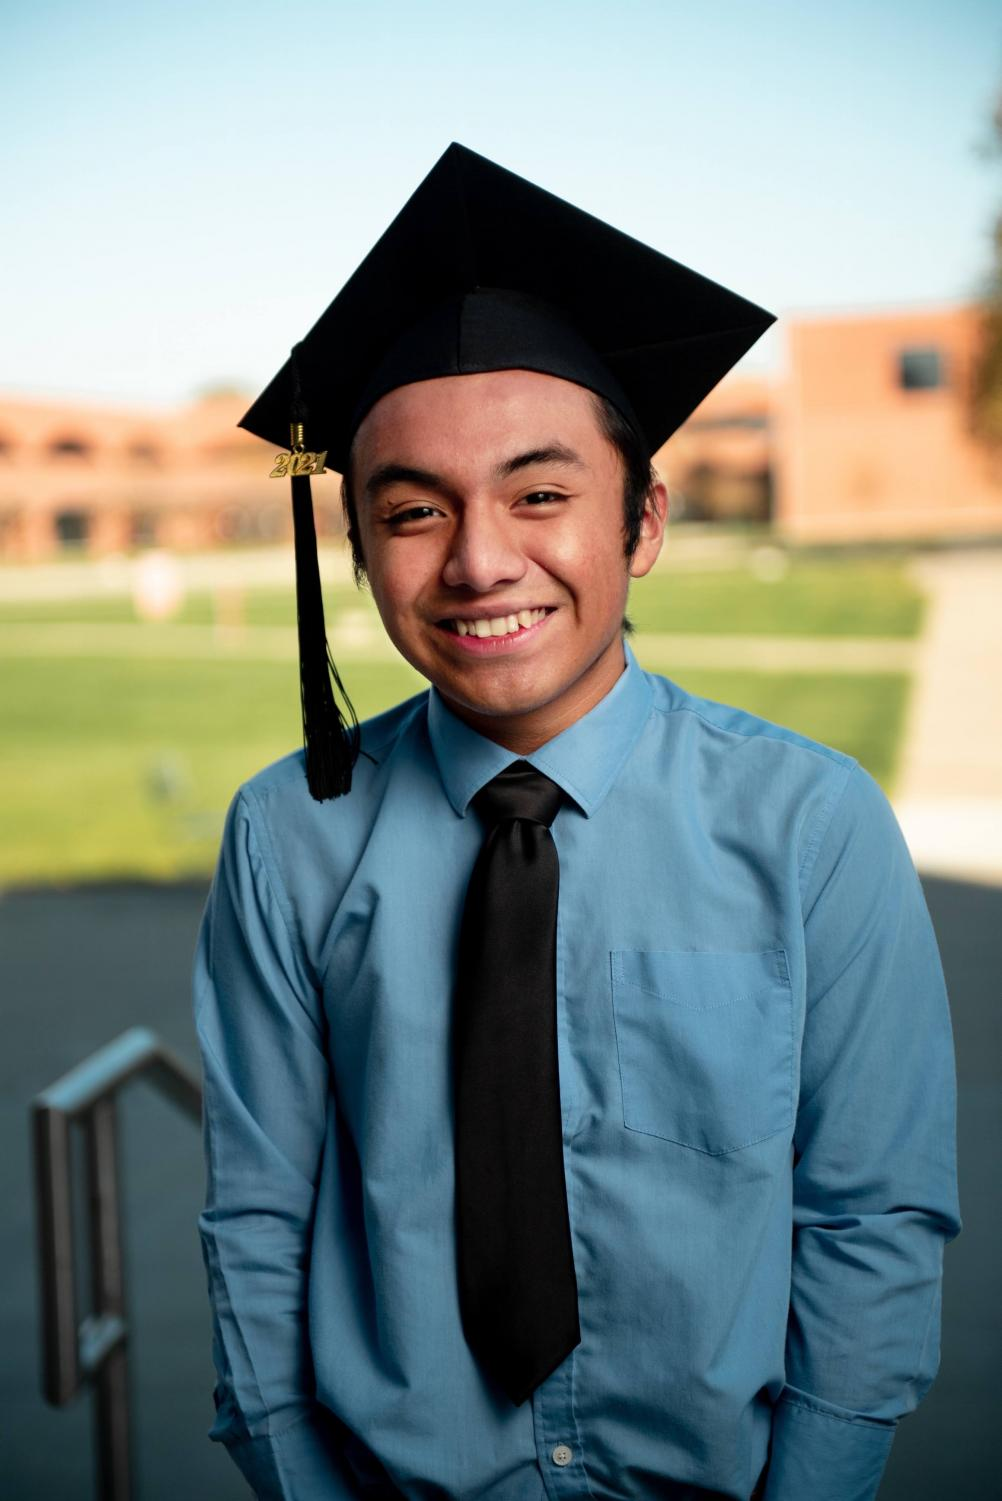 MATRICULATION EXULTATION: Senior Coby García shines a radiant grin for his senior photo. García plans to go on to study bioethics and public policy at Harvard.